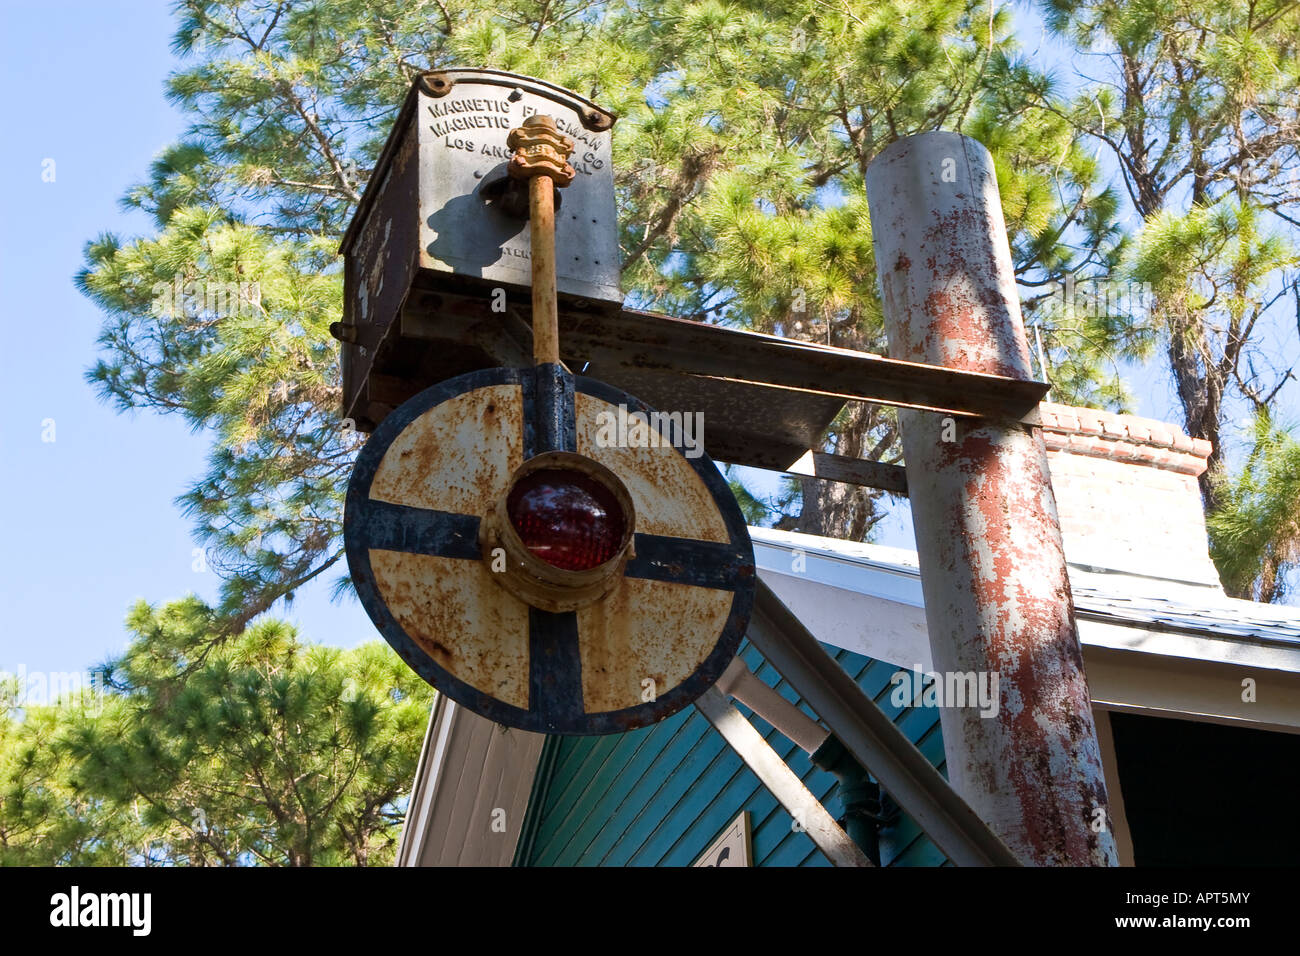 Antique Railroad Crossing Signal Stock Photo: 15857546 - Alamy